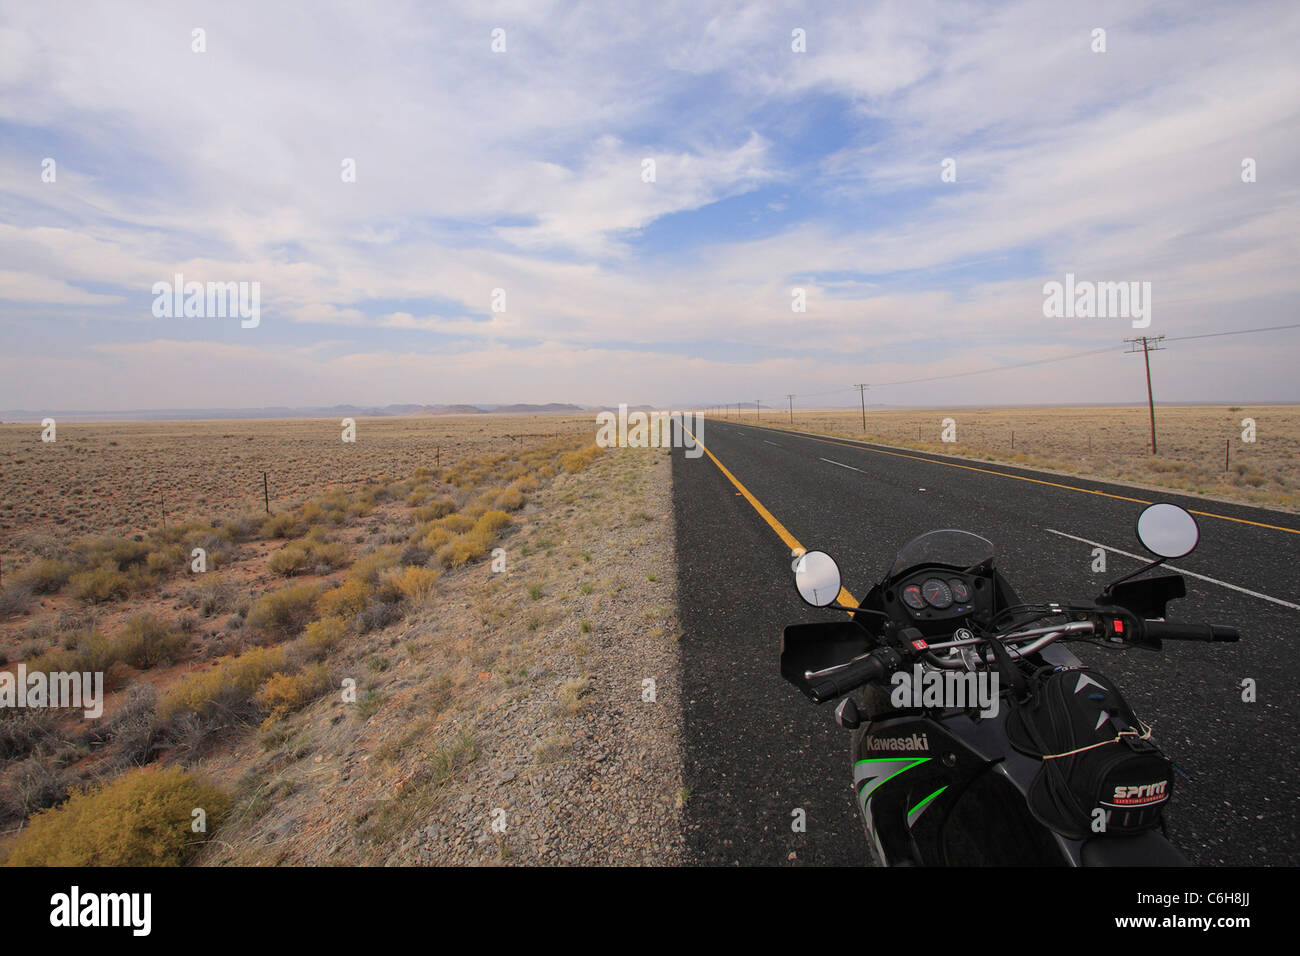 Scenic landscape with tar road and motorcycle - Stock Image